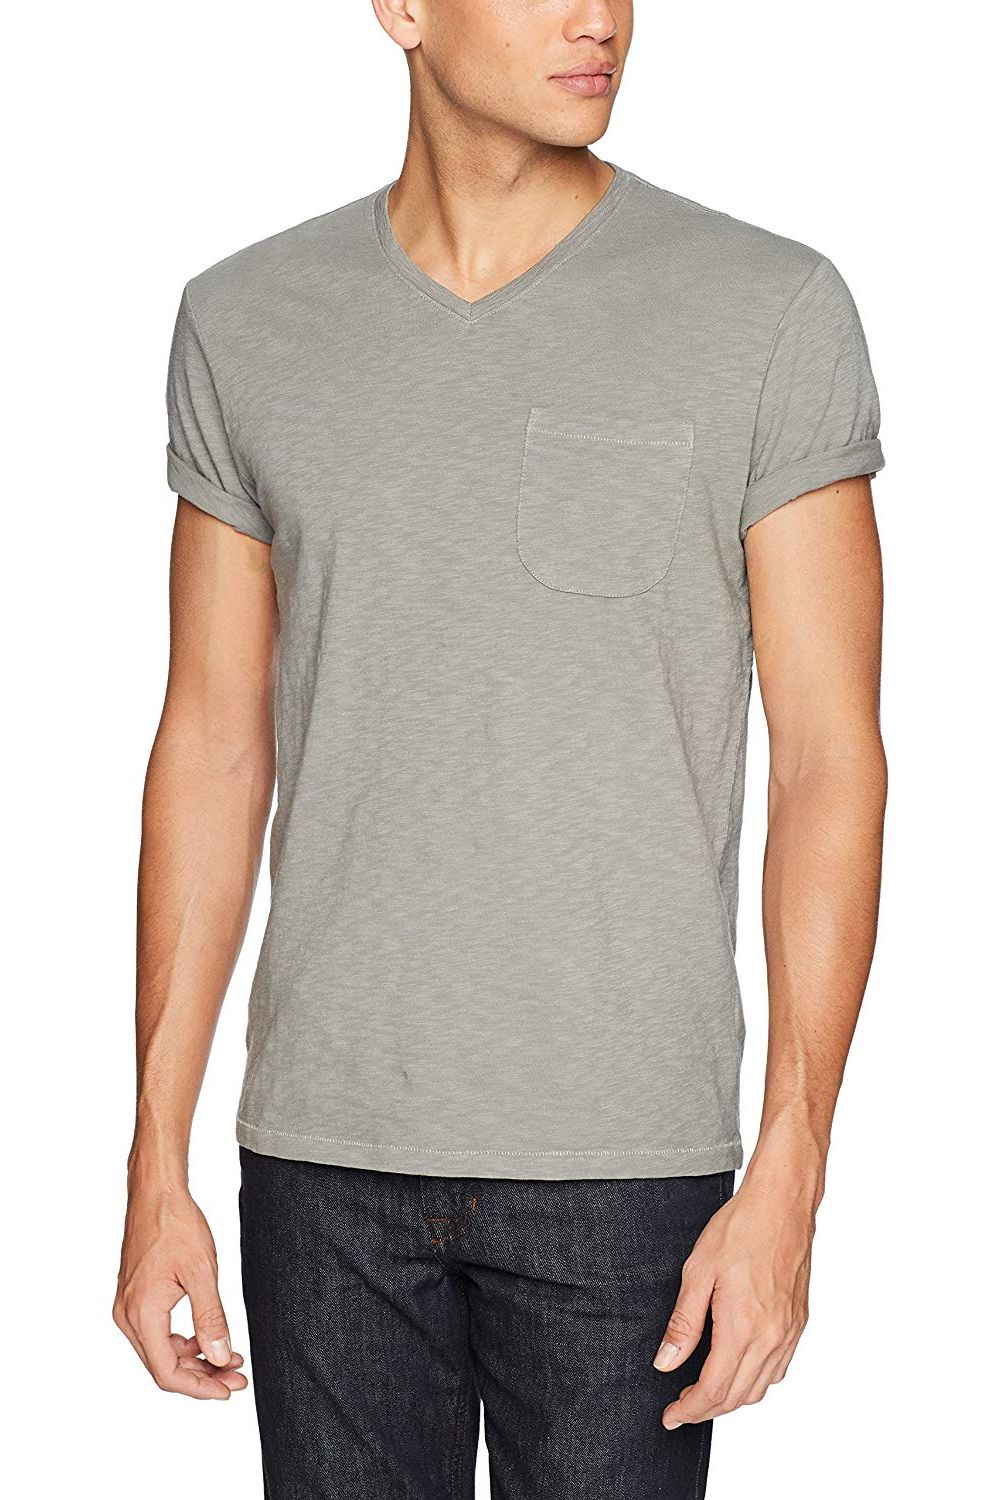 bc7baf35 Amazon Brand - Goodthreads Men's Lightweight Slub V-Neck Pocket T-Shirt at  Amazon